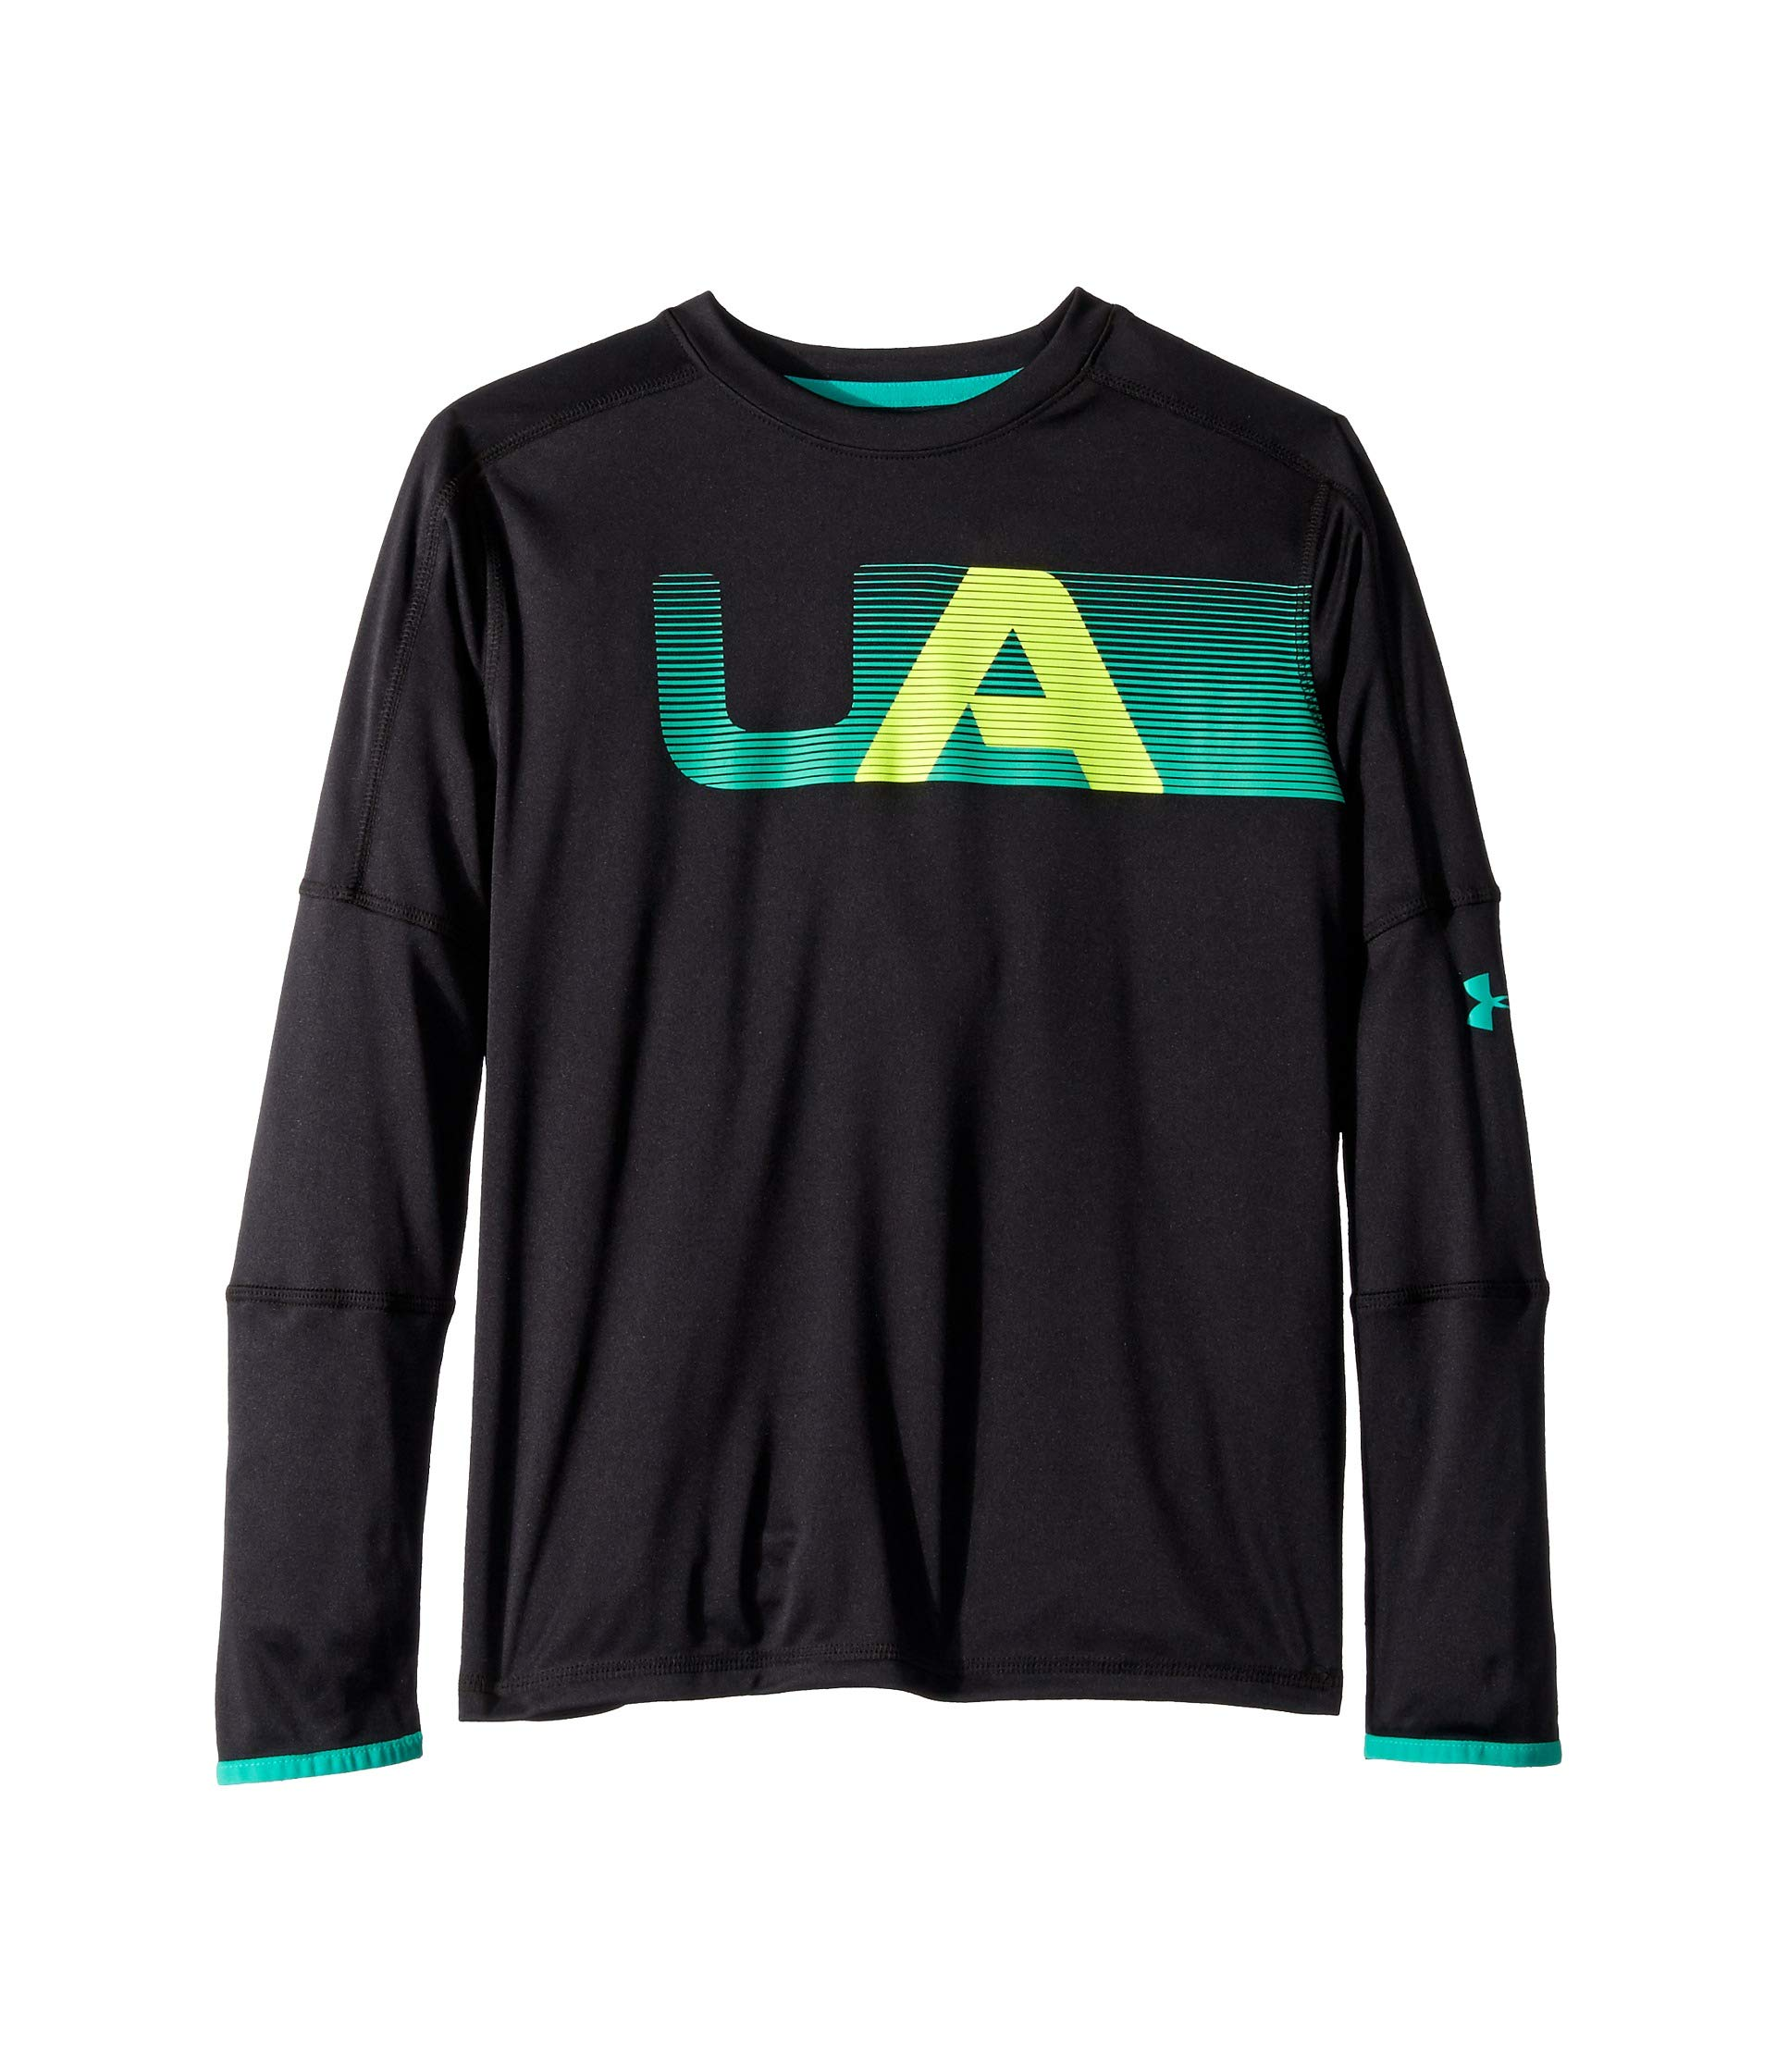 Under Armour Kids Boy's Tech Long Sleeve Tee (Big Kids) Black/Green Malachite Large by Under Armour